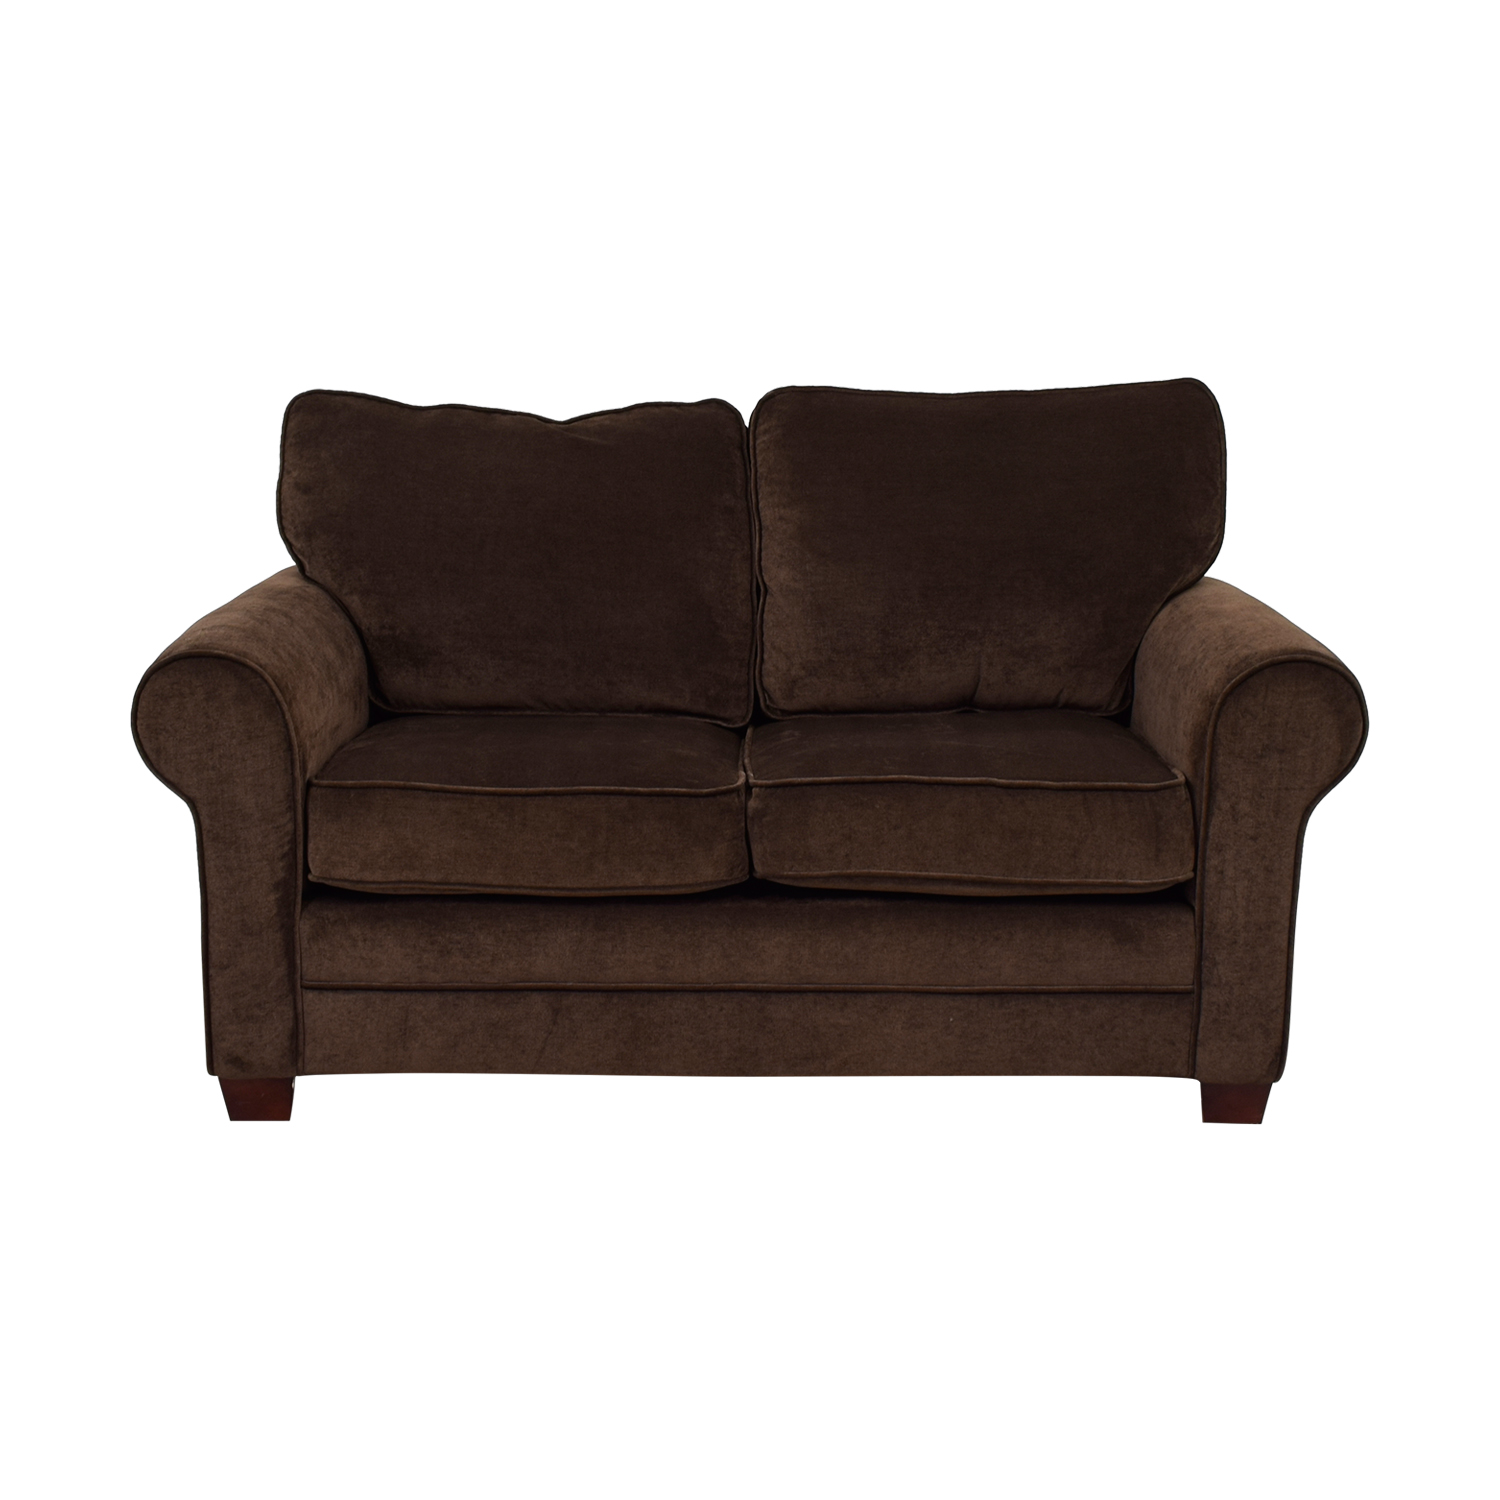 shop Bob's Furniture Bob's Furniture Brown Loveseat online